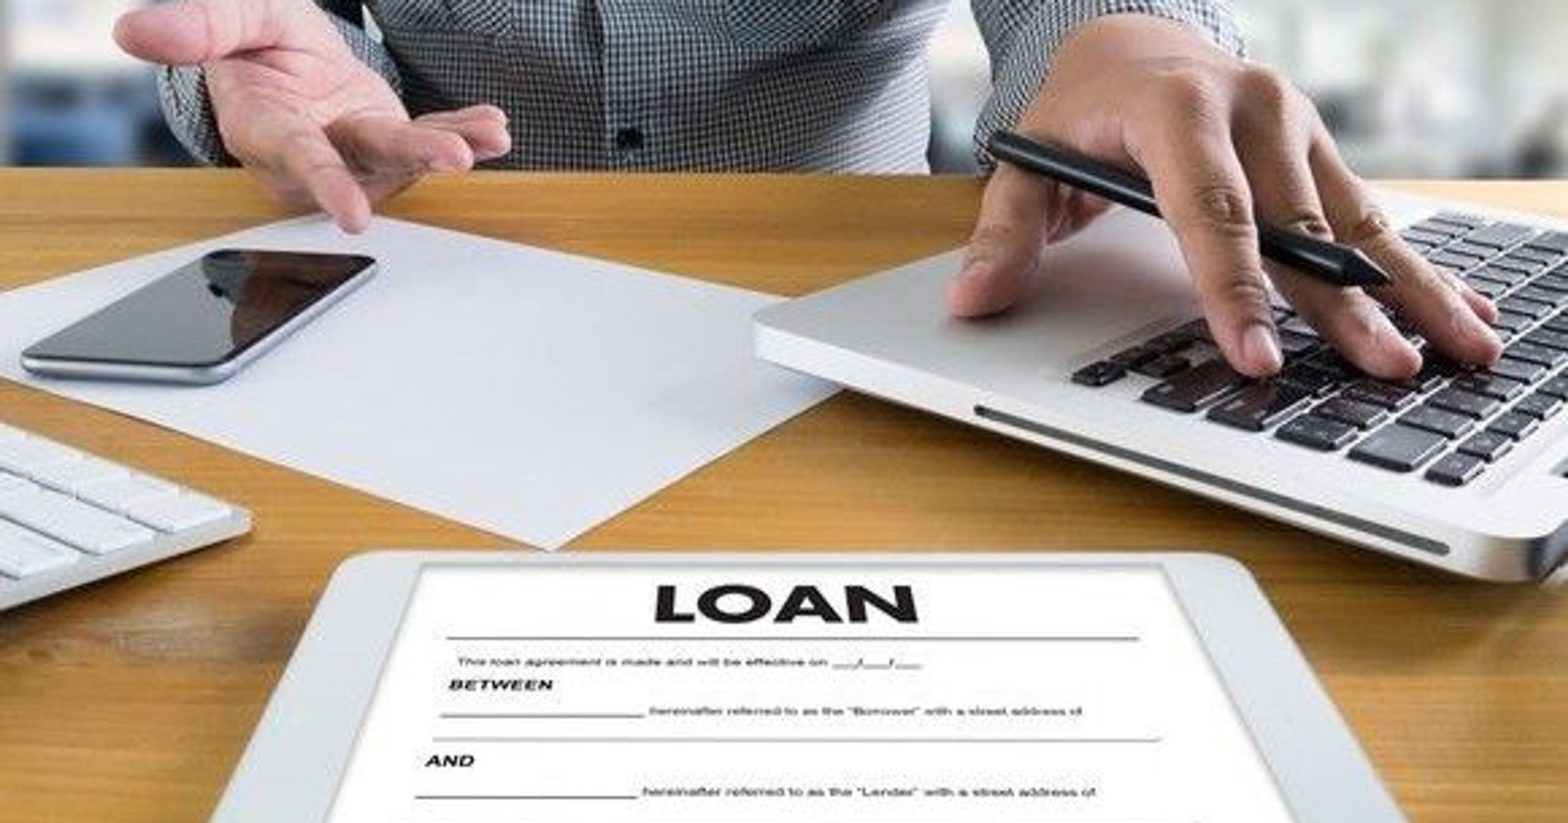 Myinstantoffer-Pre-Approval-Personal-Loan-By-Lending-Club